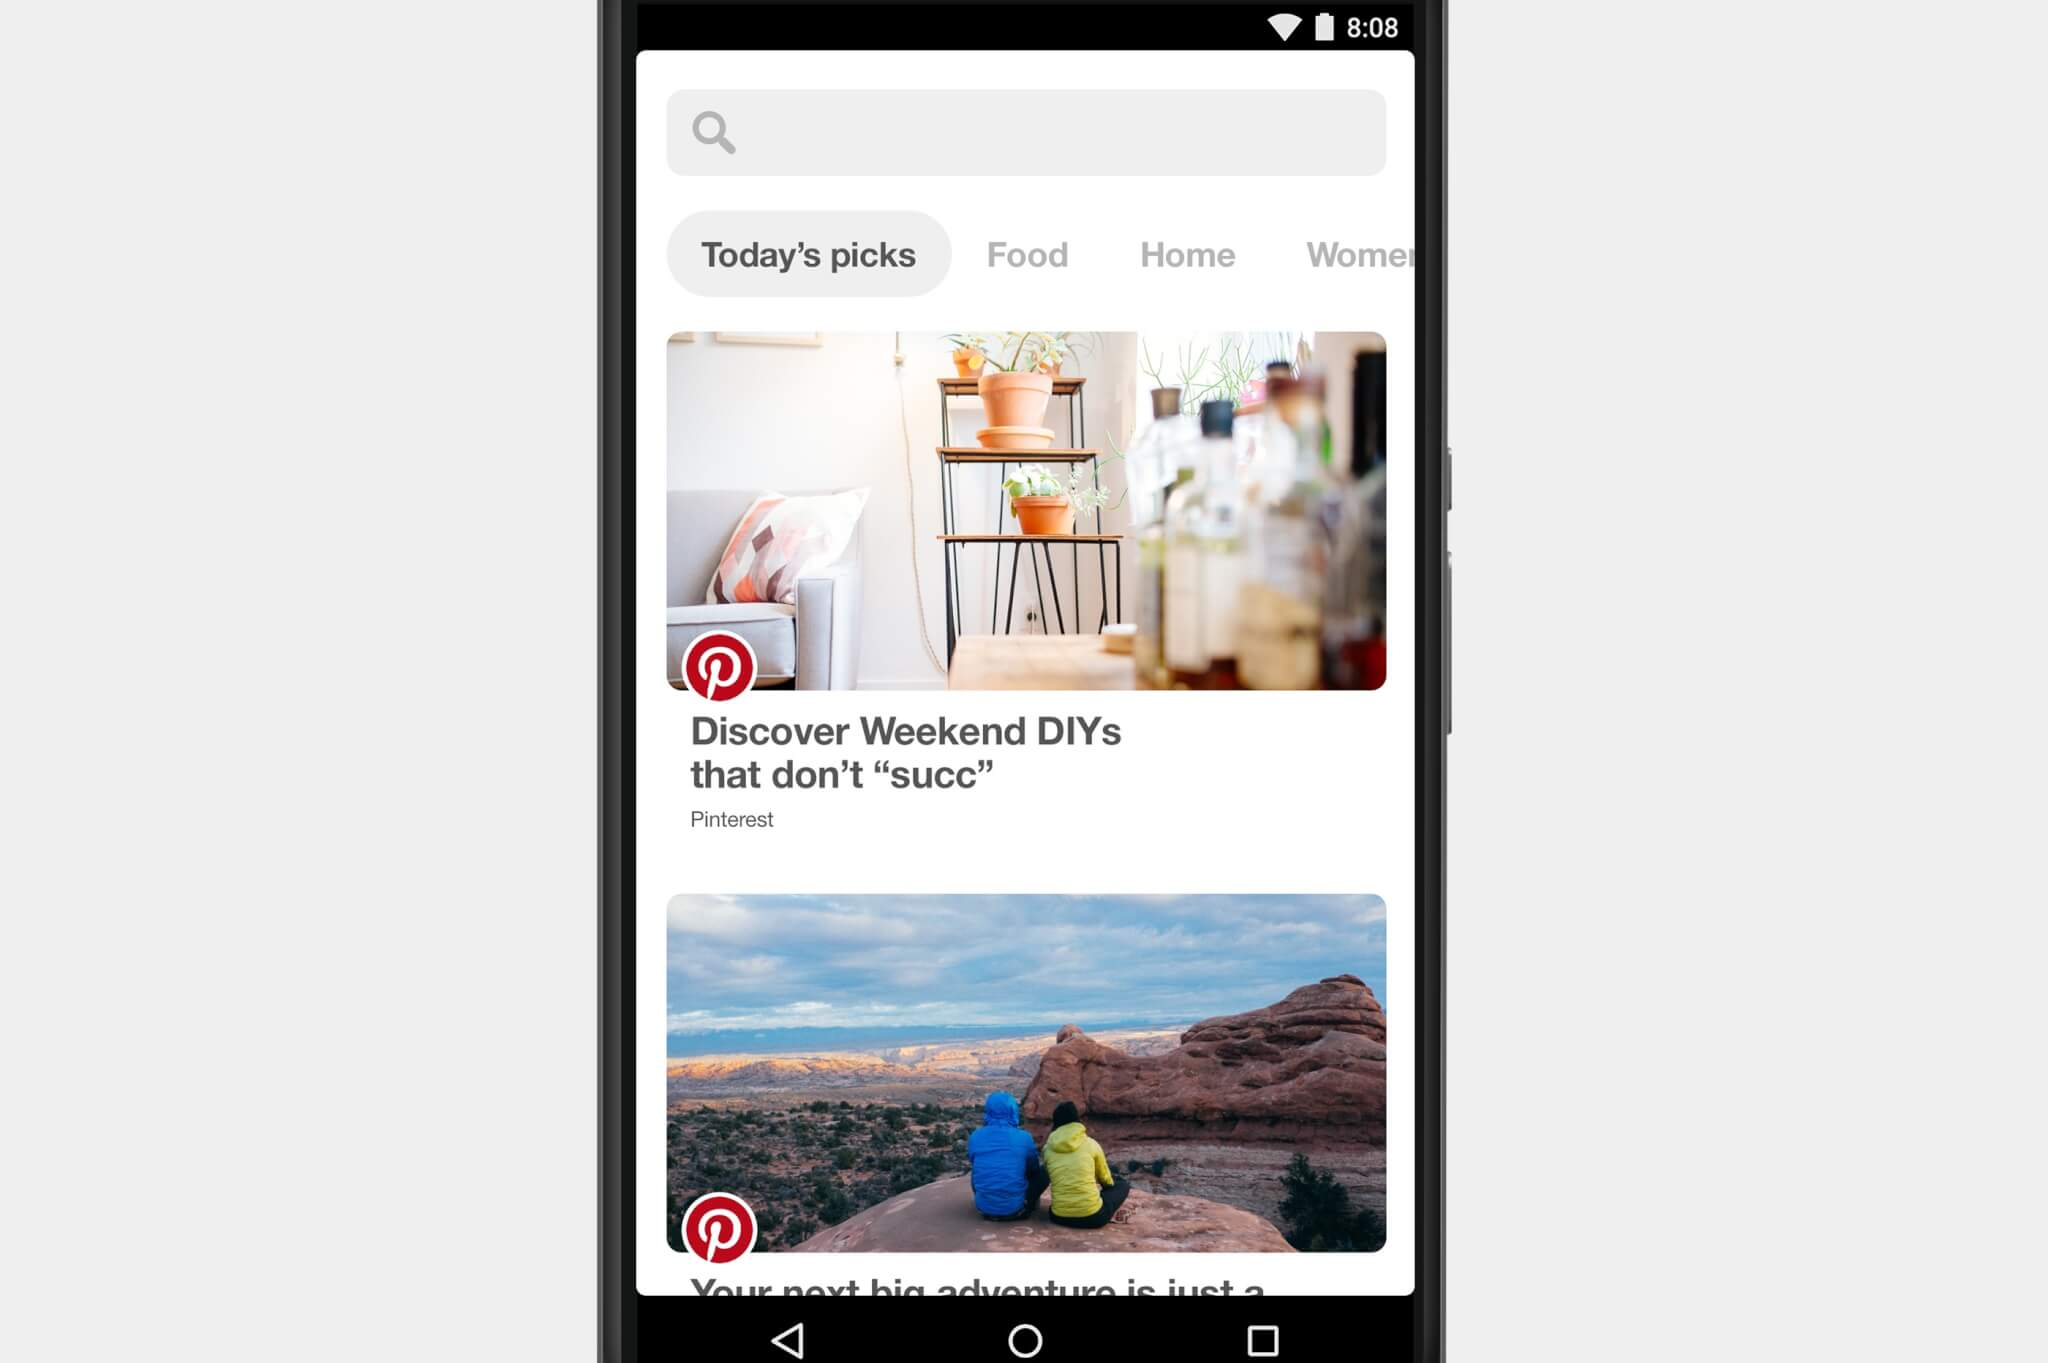 Pinterest Explore on Android